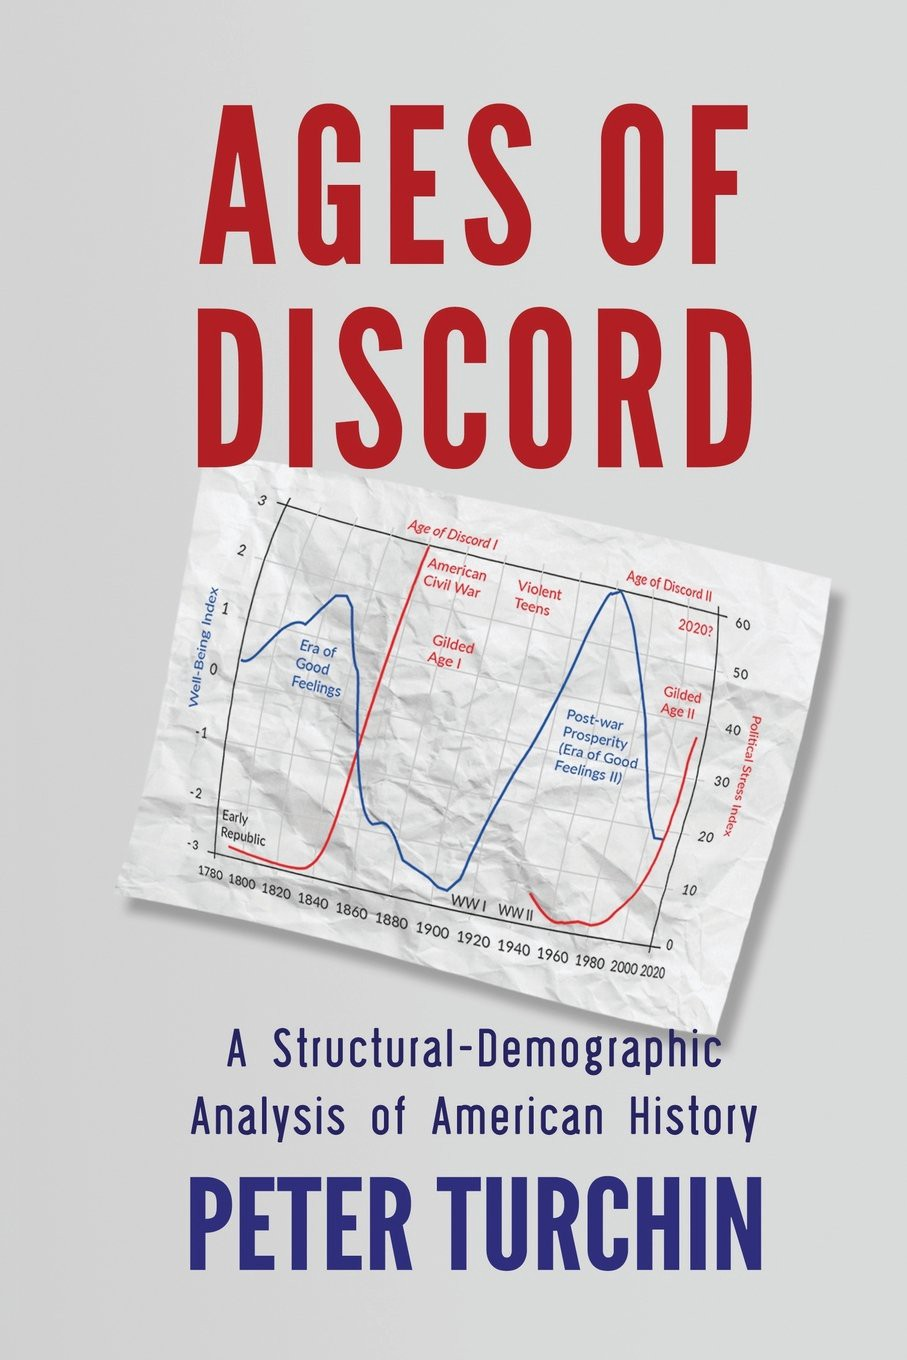 'Ages of Discord' by Peter Turchin